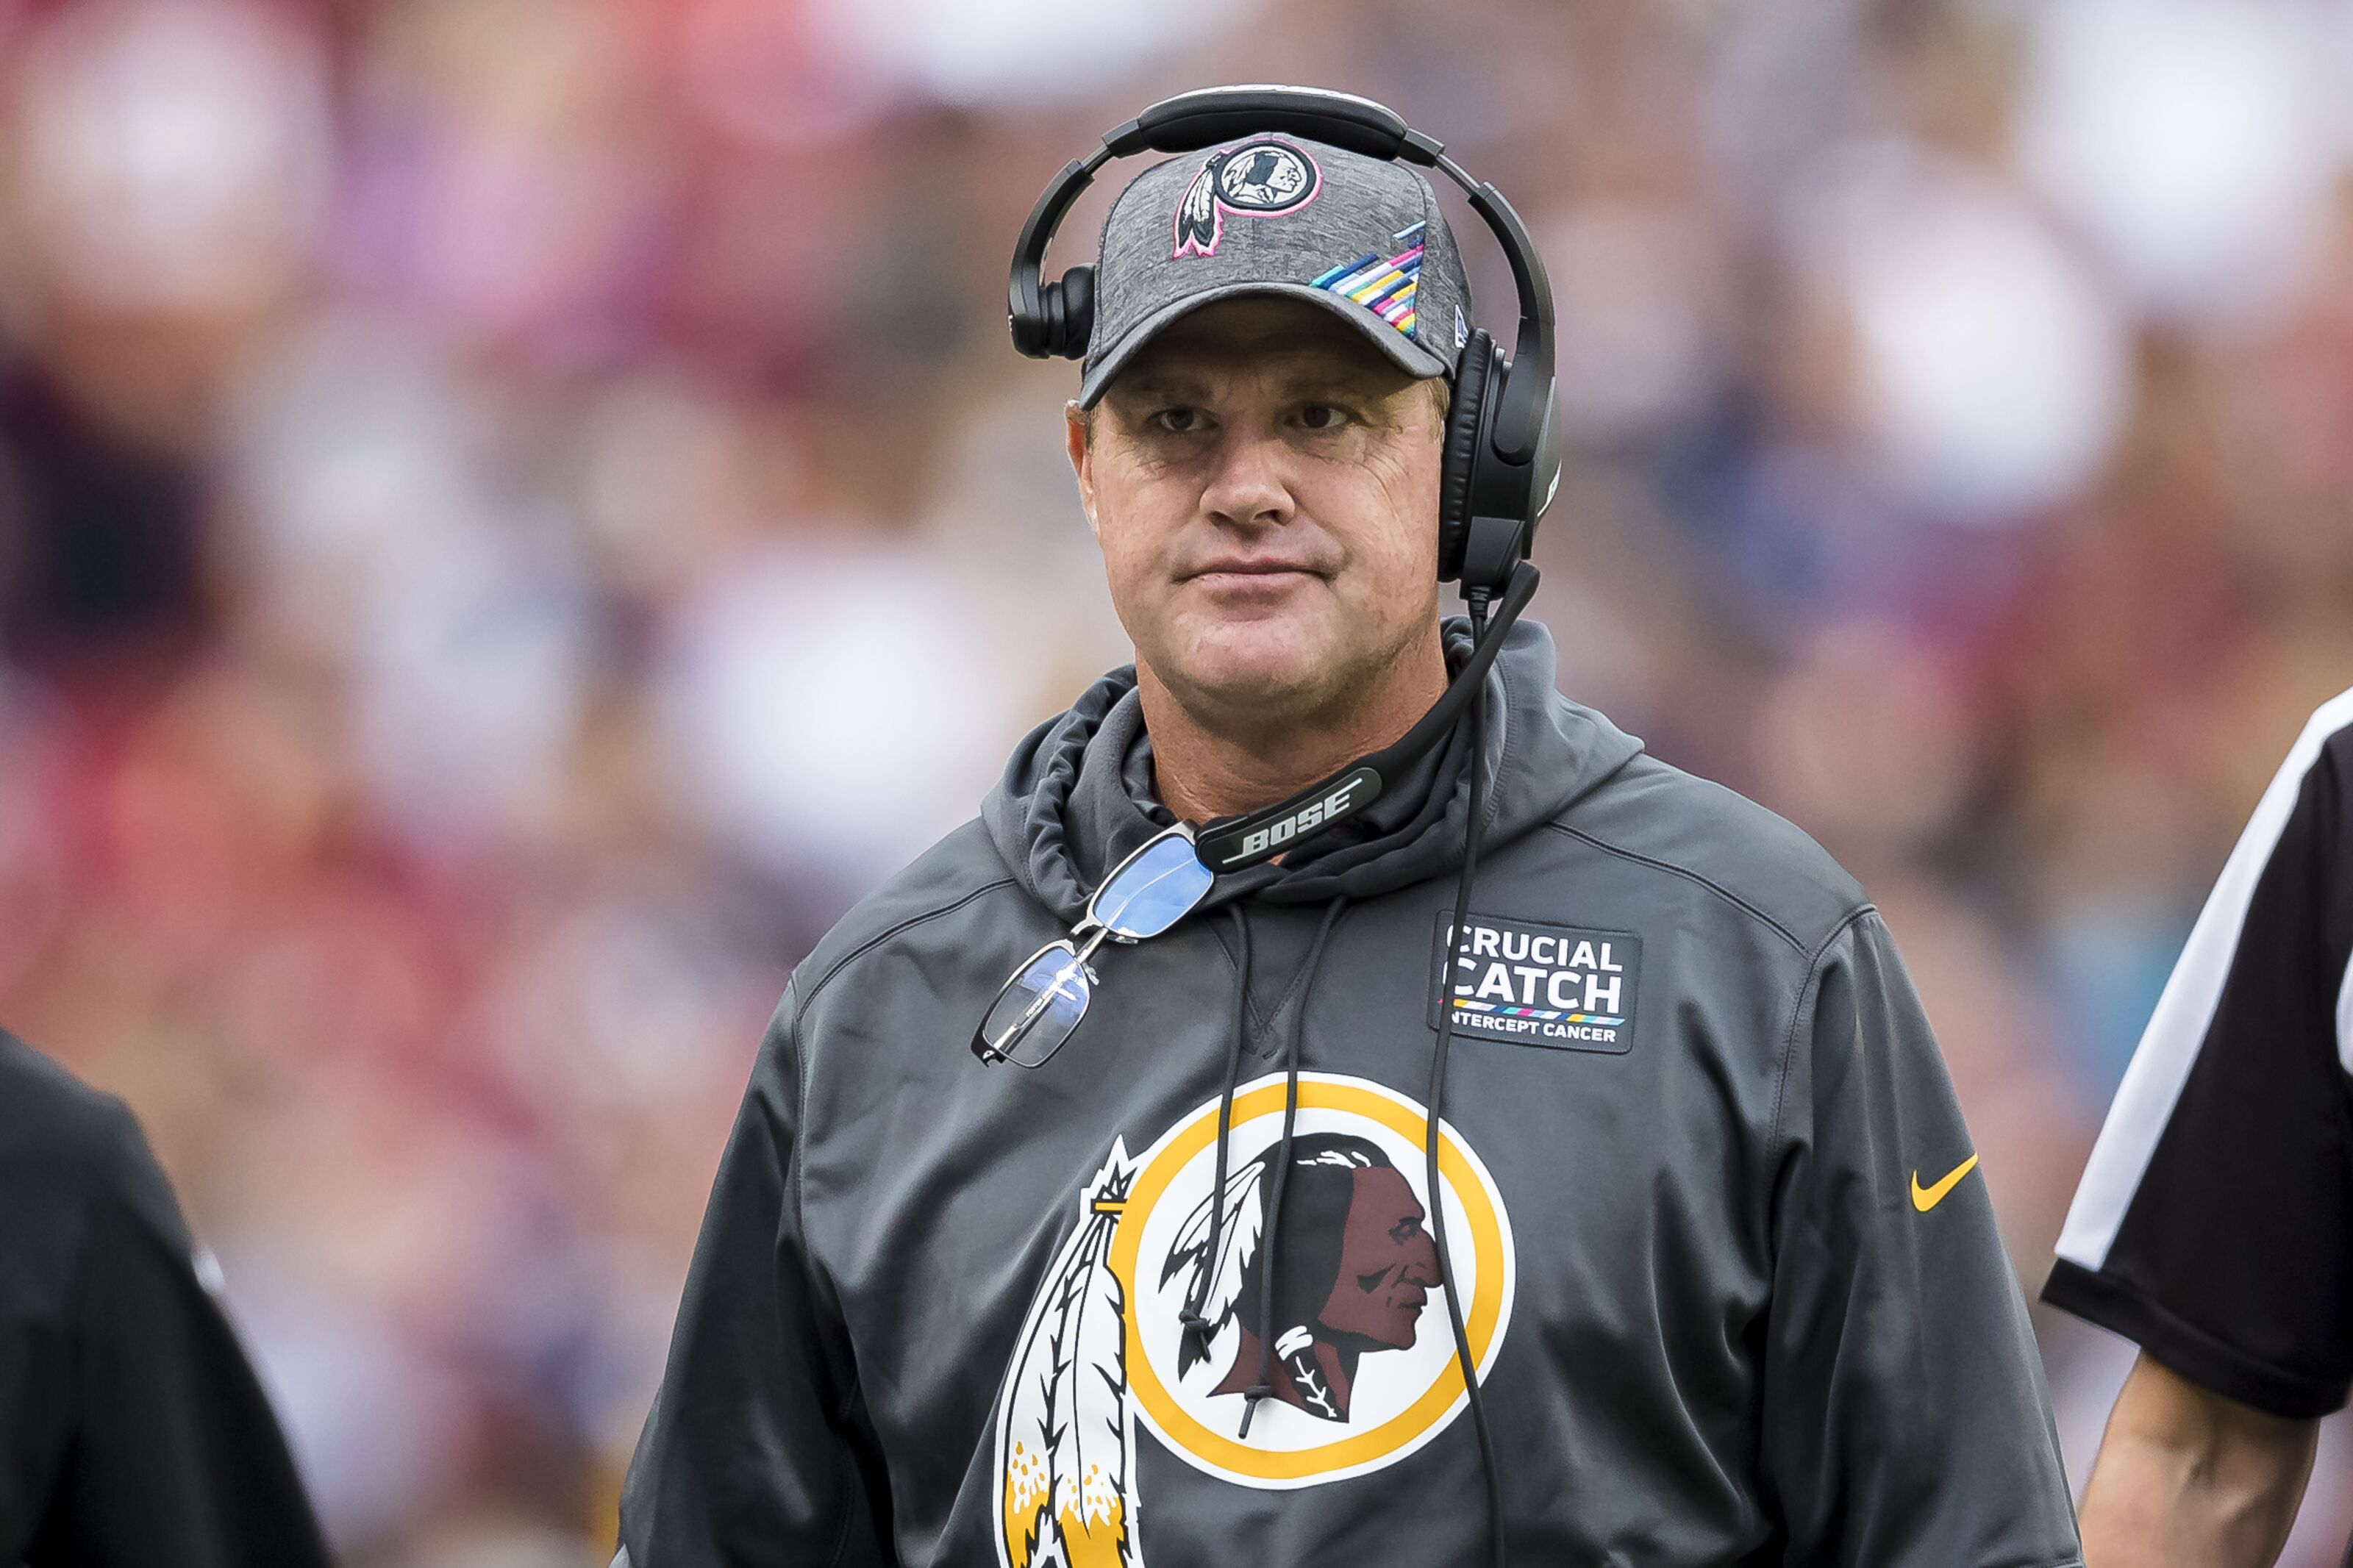 Jaguars will interview former Redskins coach Jay Gruden for OC role